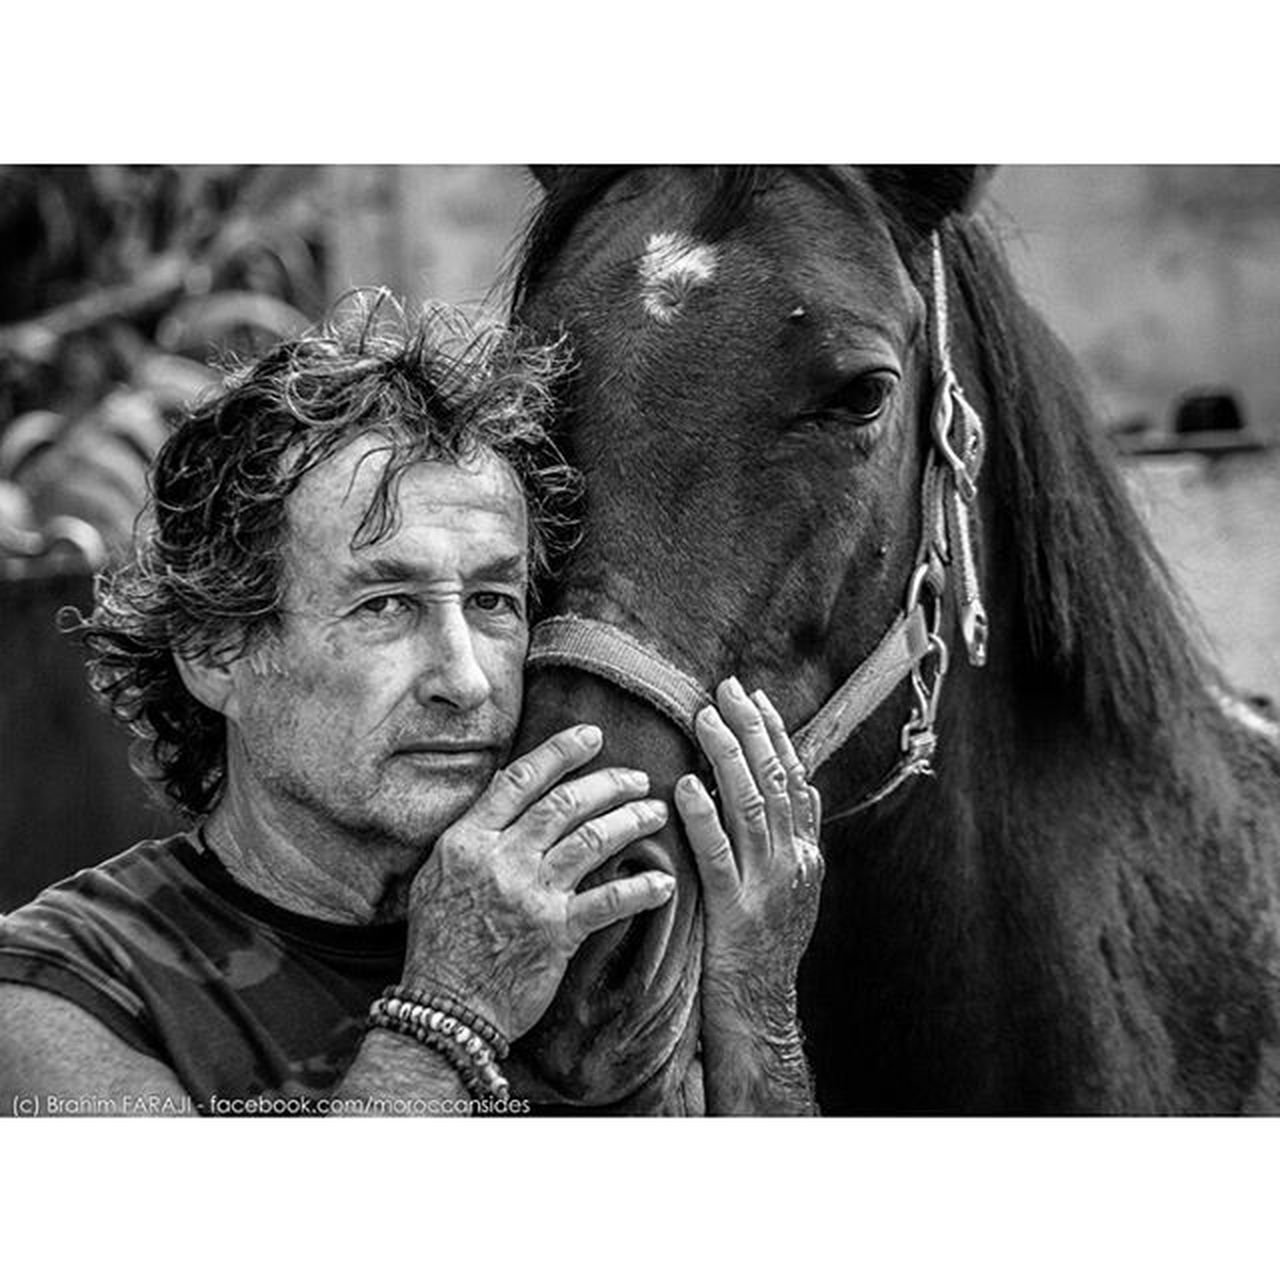 SPIRIT ! Man Horse Soul Spirit Beauty Nature Relationship Connection Berkane Oujda Maroc Morocco Nikon Picoftheday Igmorocco Ig_morocco Inmorocco Nowmorocco Vscom Knight  Chevalier équitation Farm Ferme